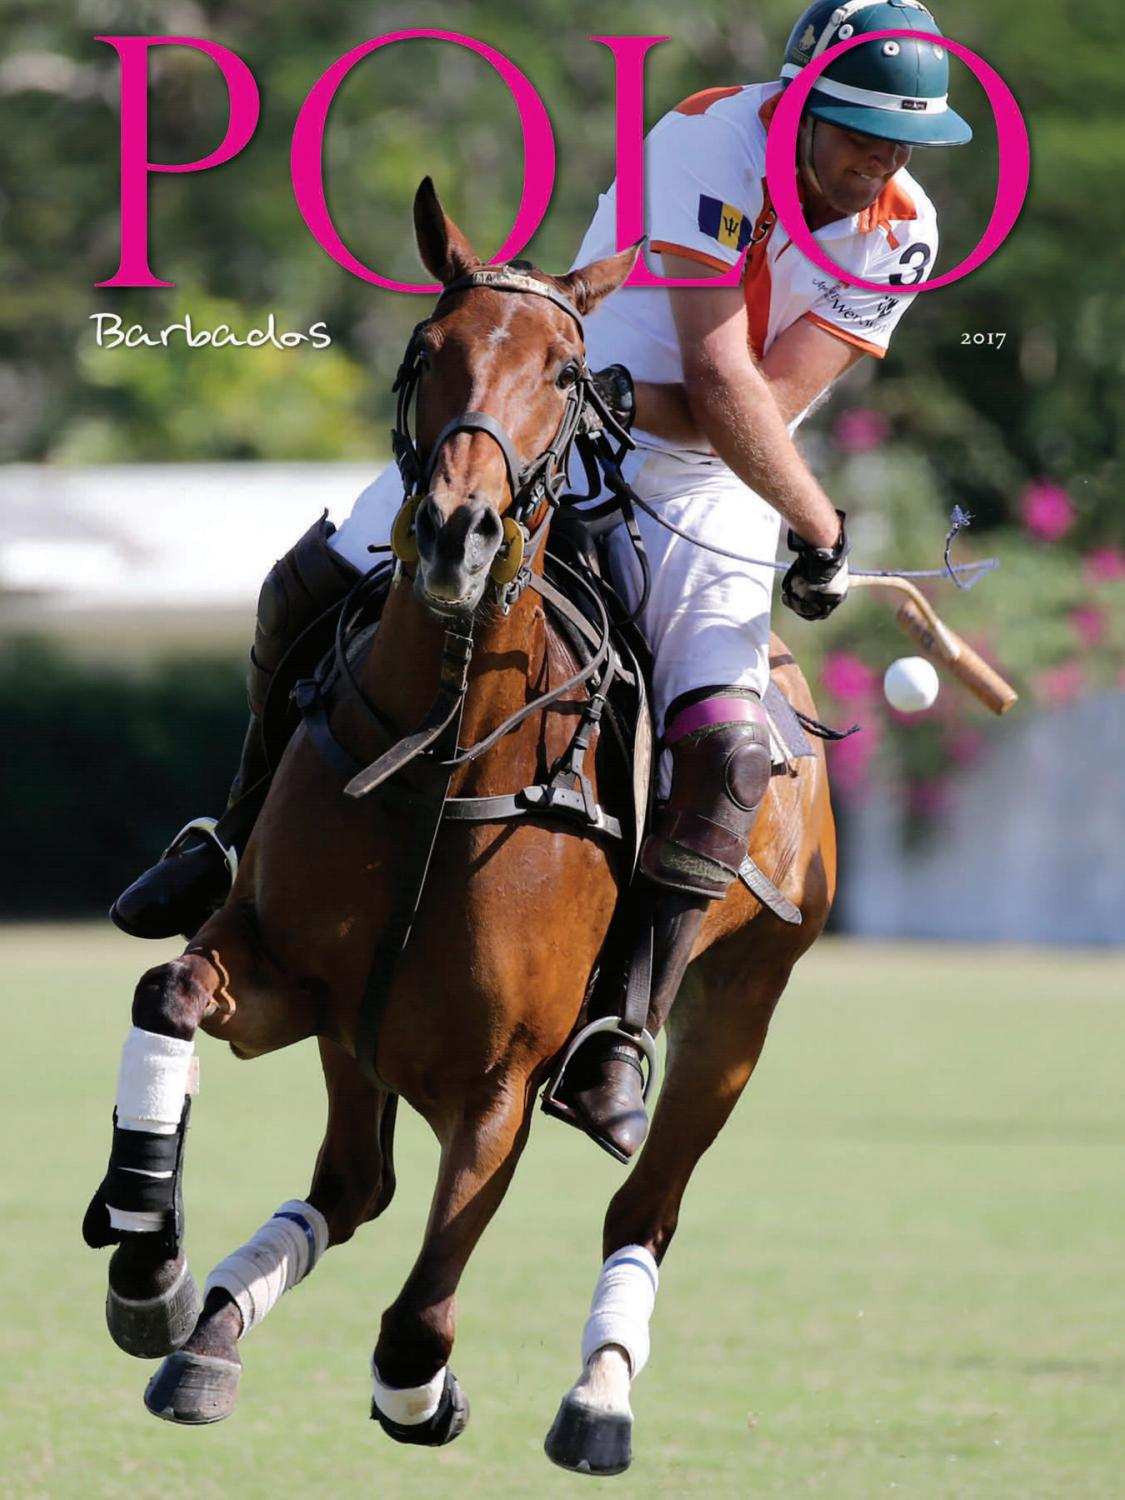 Cottage Car Sales >> Polo Barbados 2017 by Hiltop Publications Ltd - Issuu